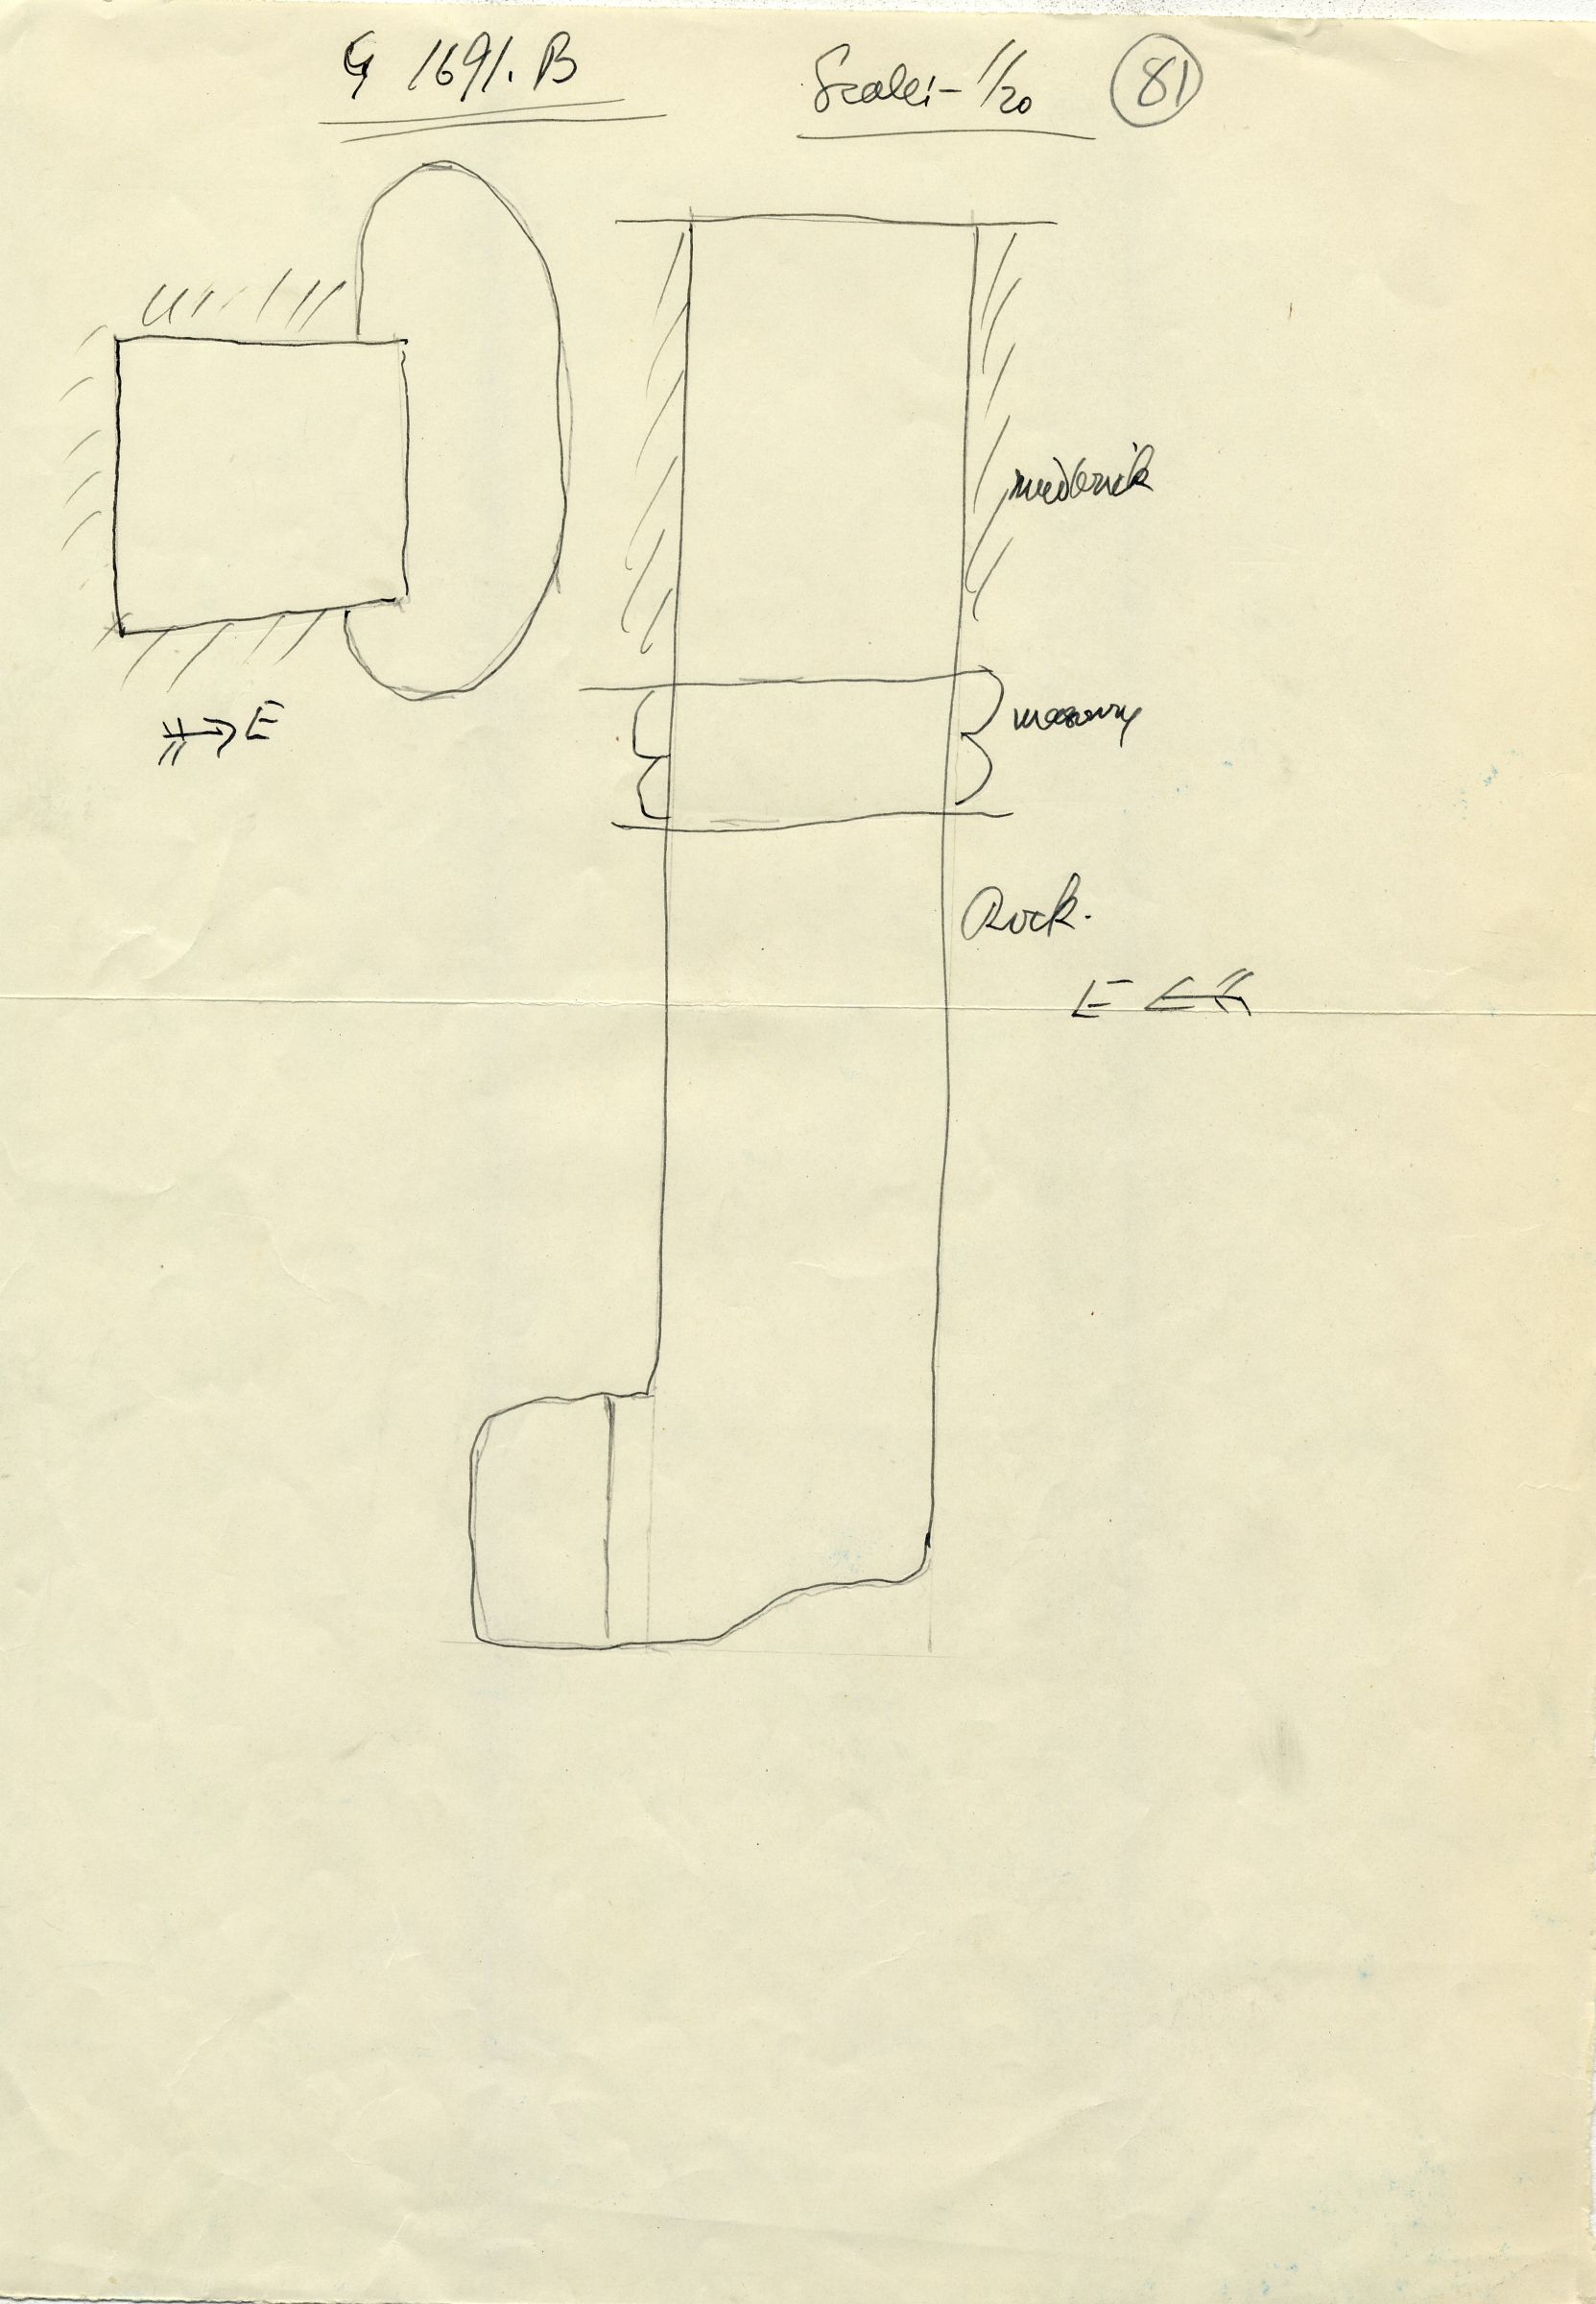 Maps and plans: G 1691, Shaft B